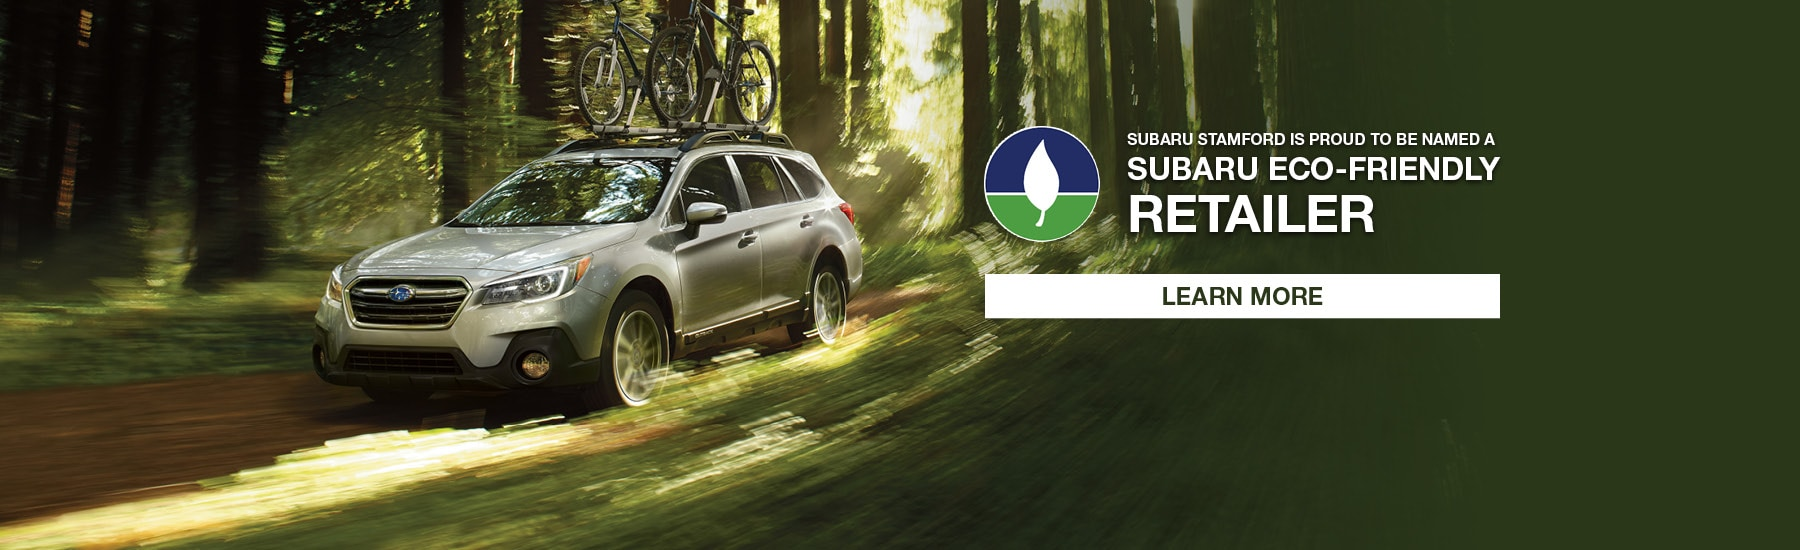 Subaru stamford used cars